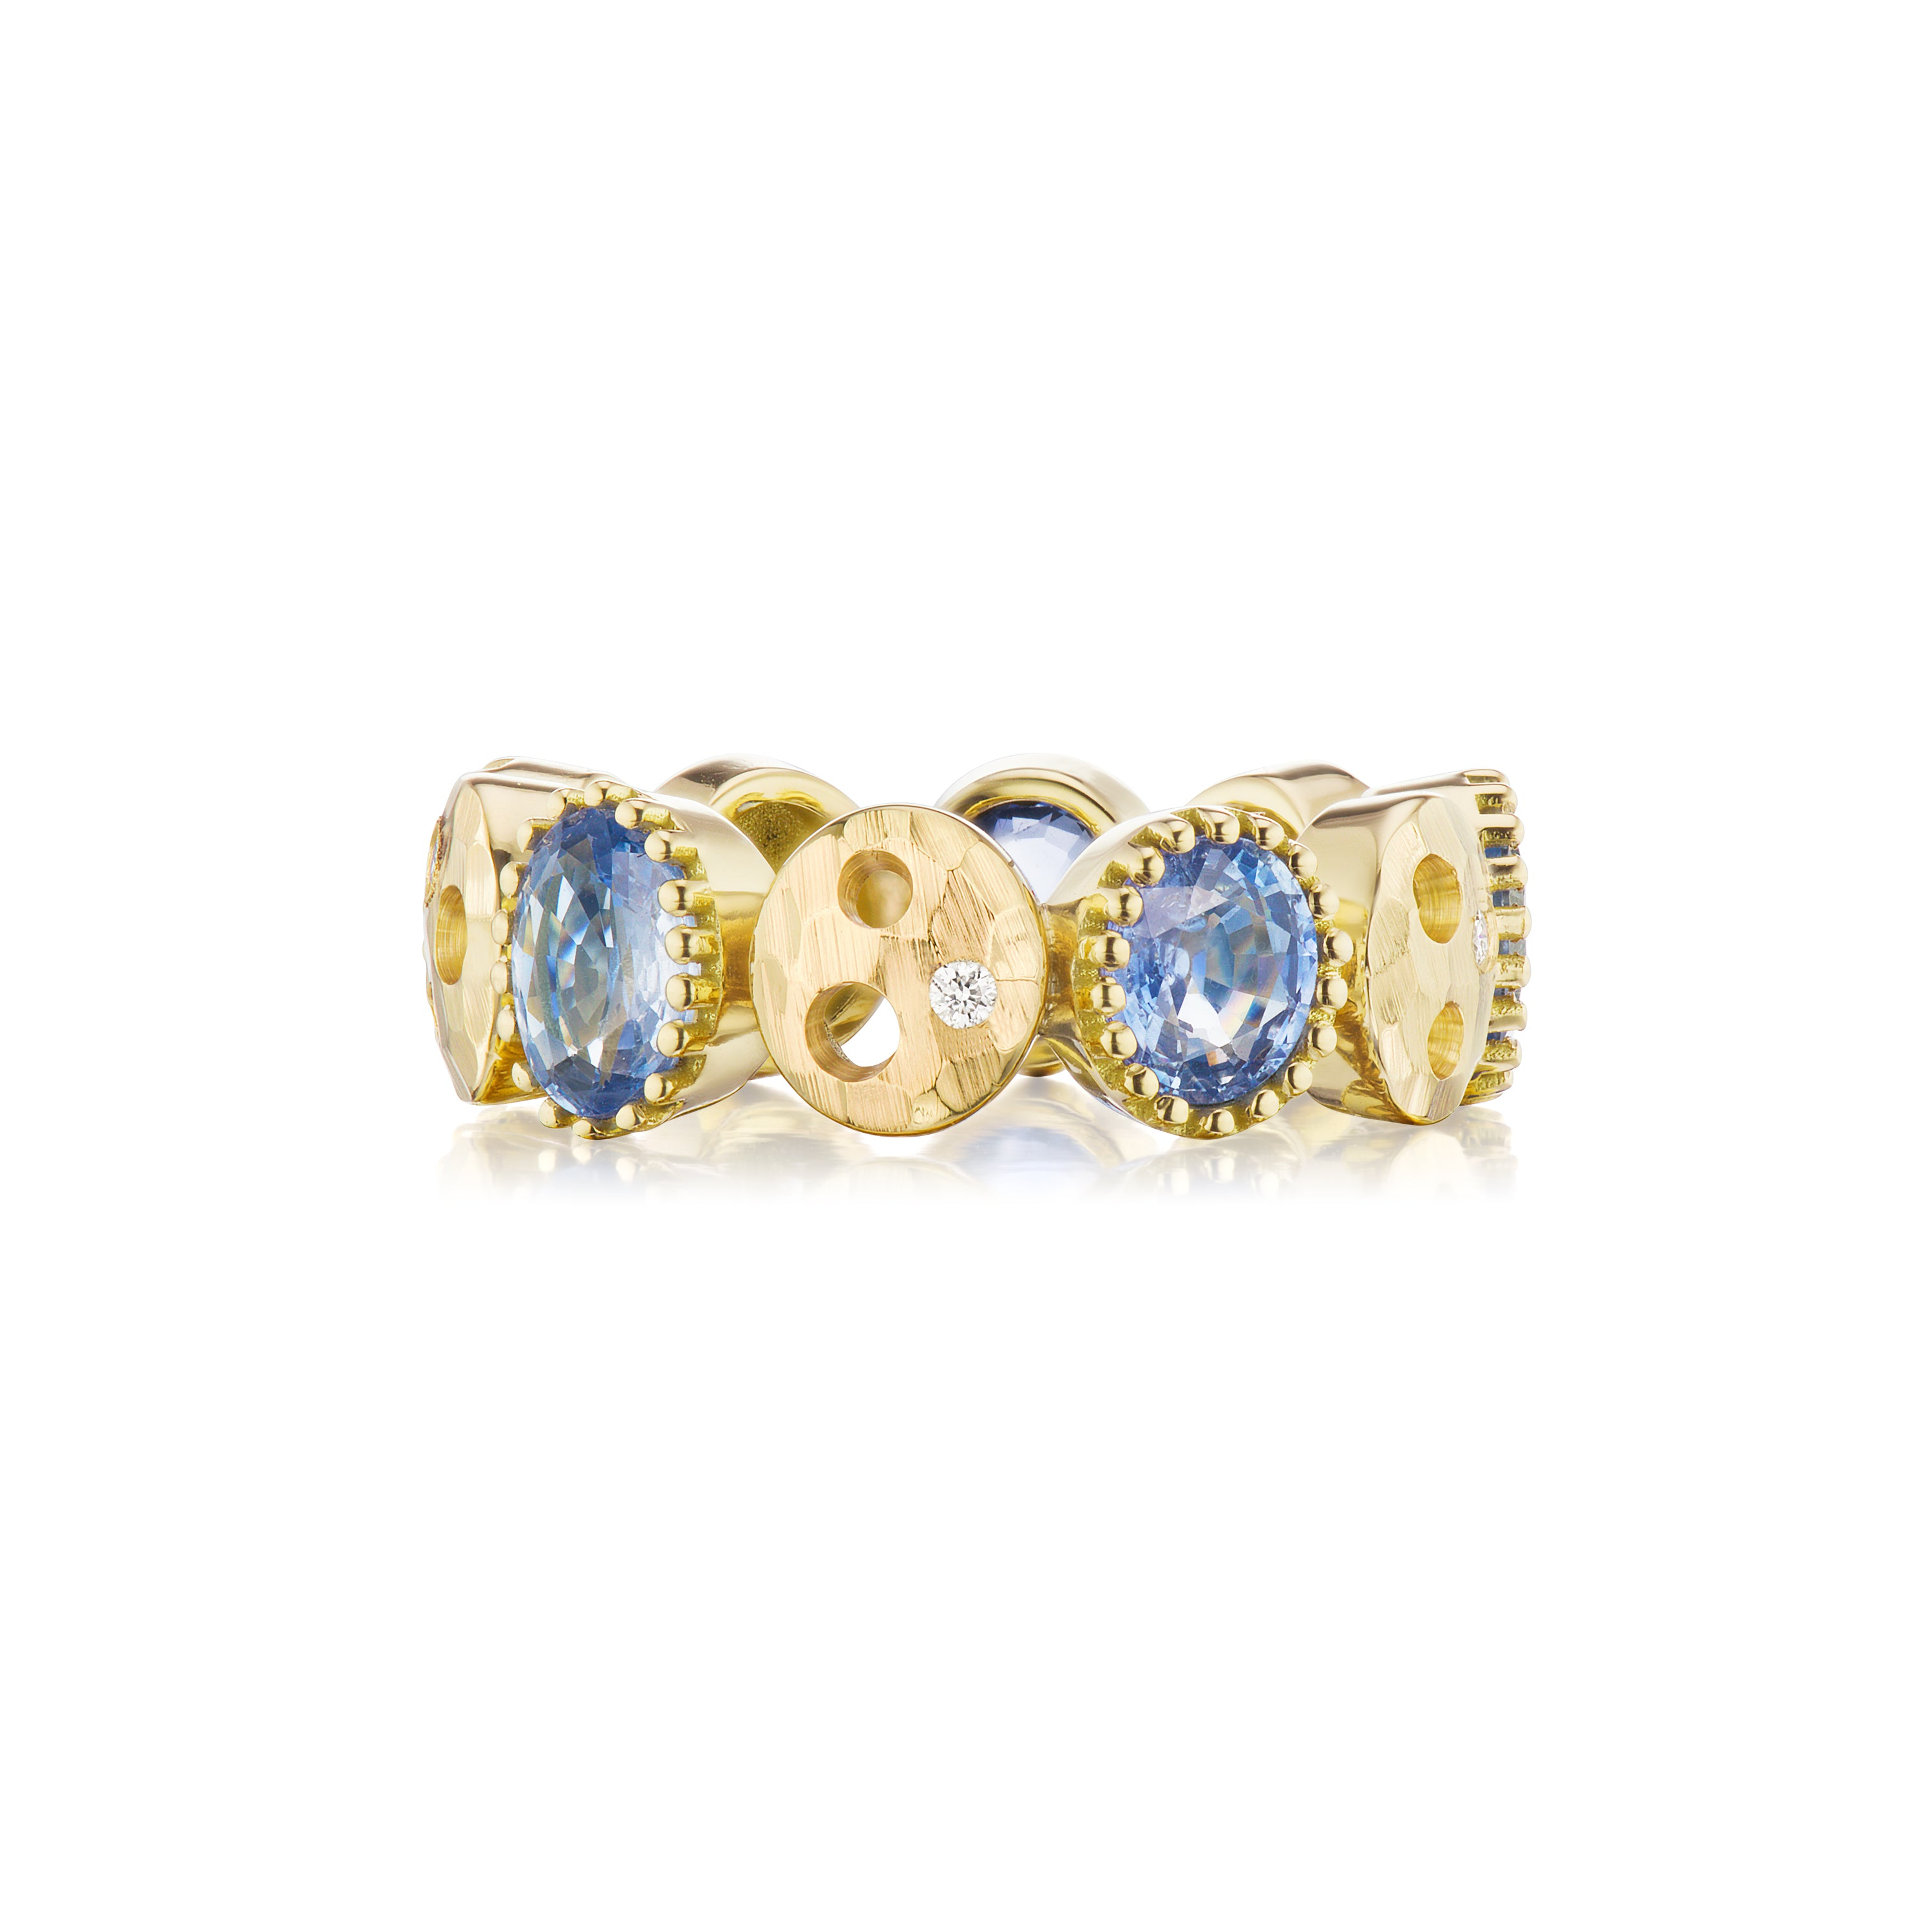 Oval Oculus & Eternity Band with Light Blue Sapphire